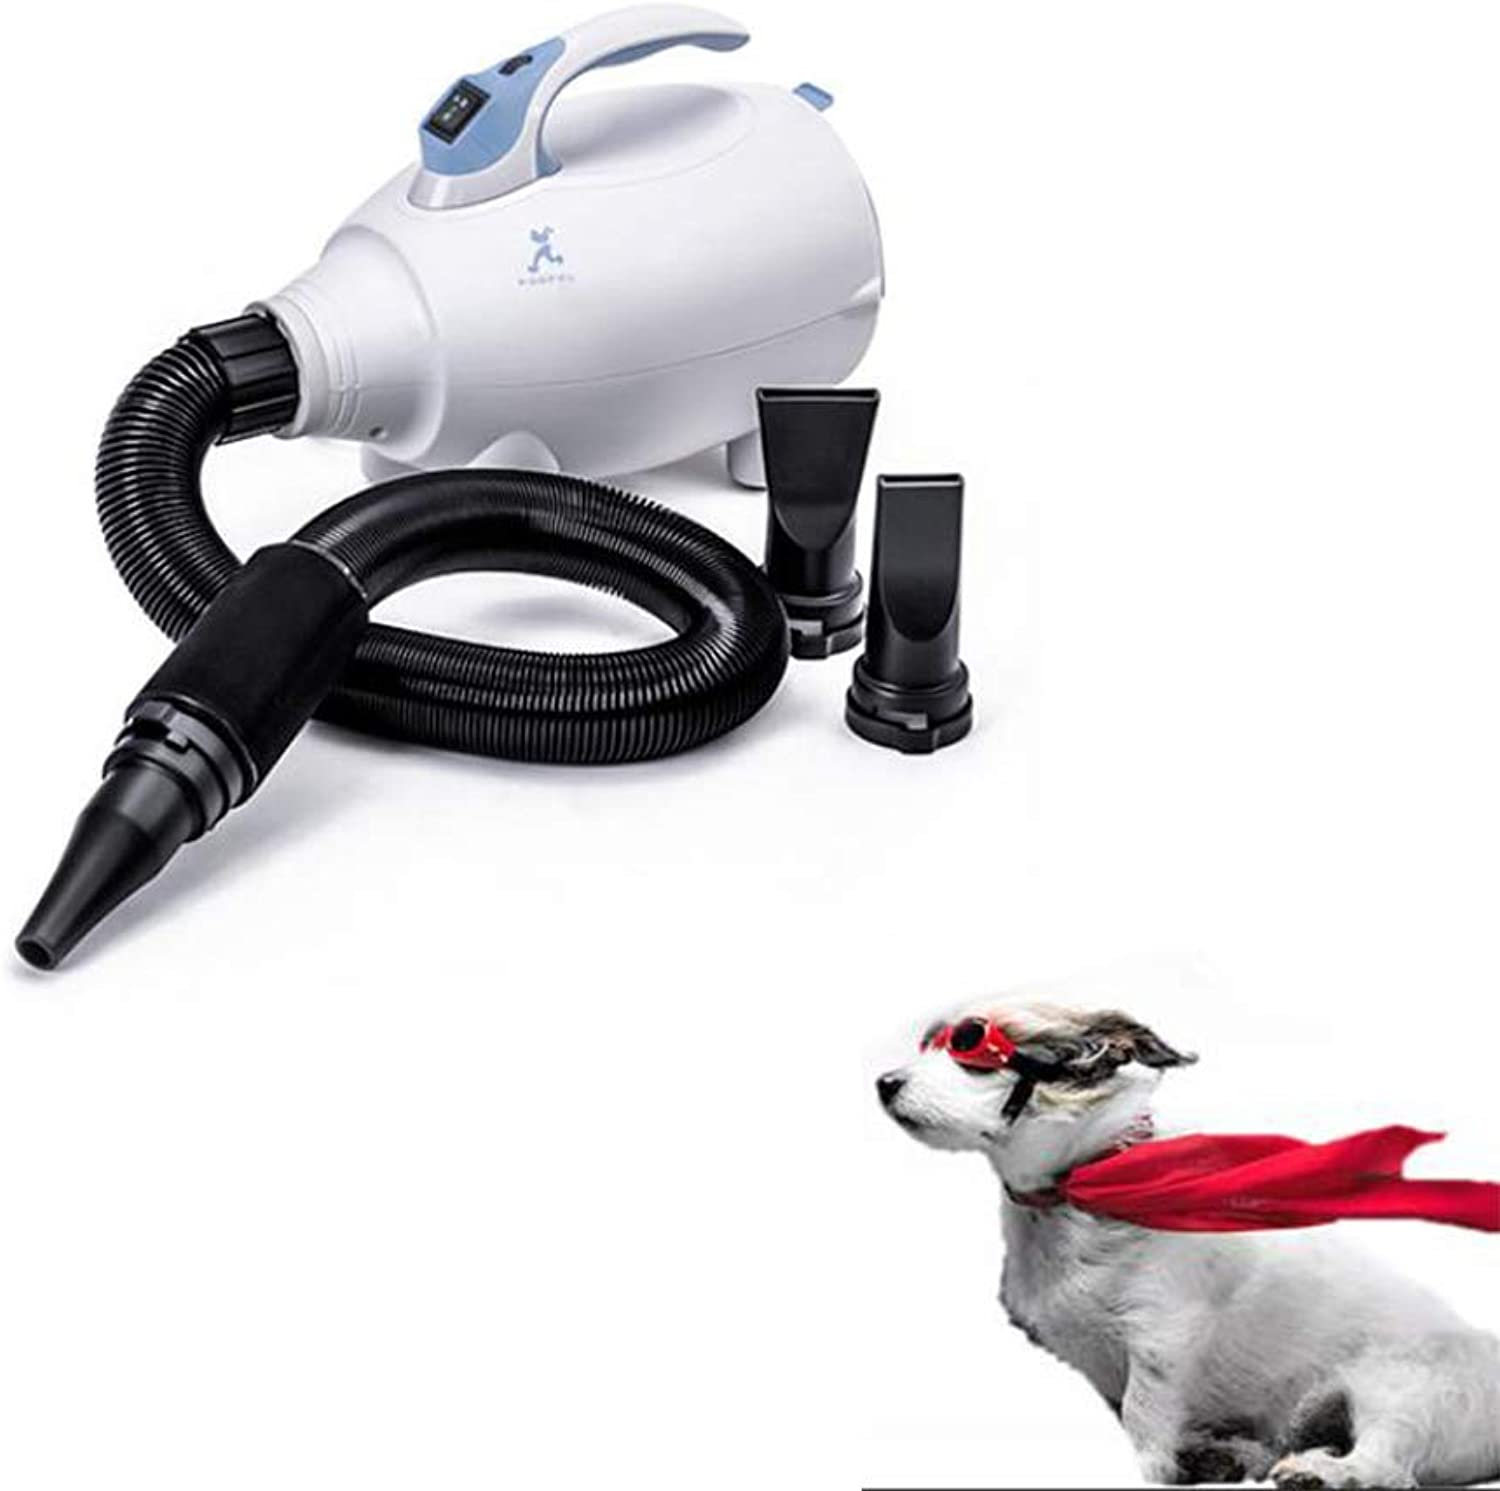 QZH Variable speed pet grooming hair dryer, stepless speed dog cat pet grooming hair dryer, pet high power large dog long hair bathing hair dryer,White